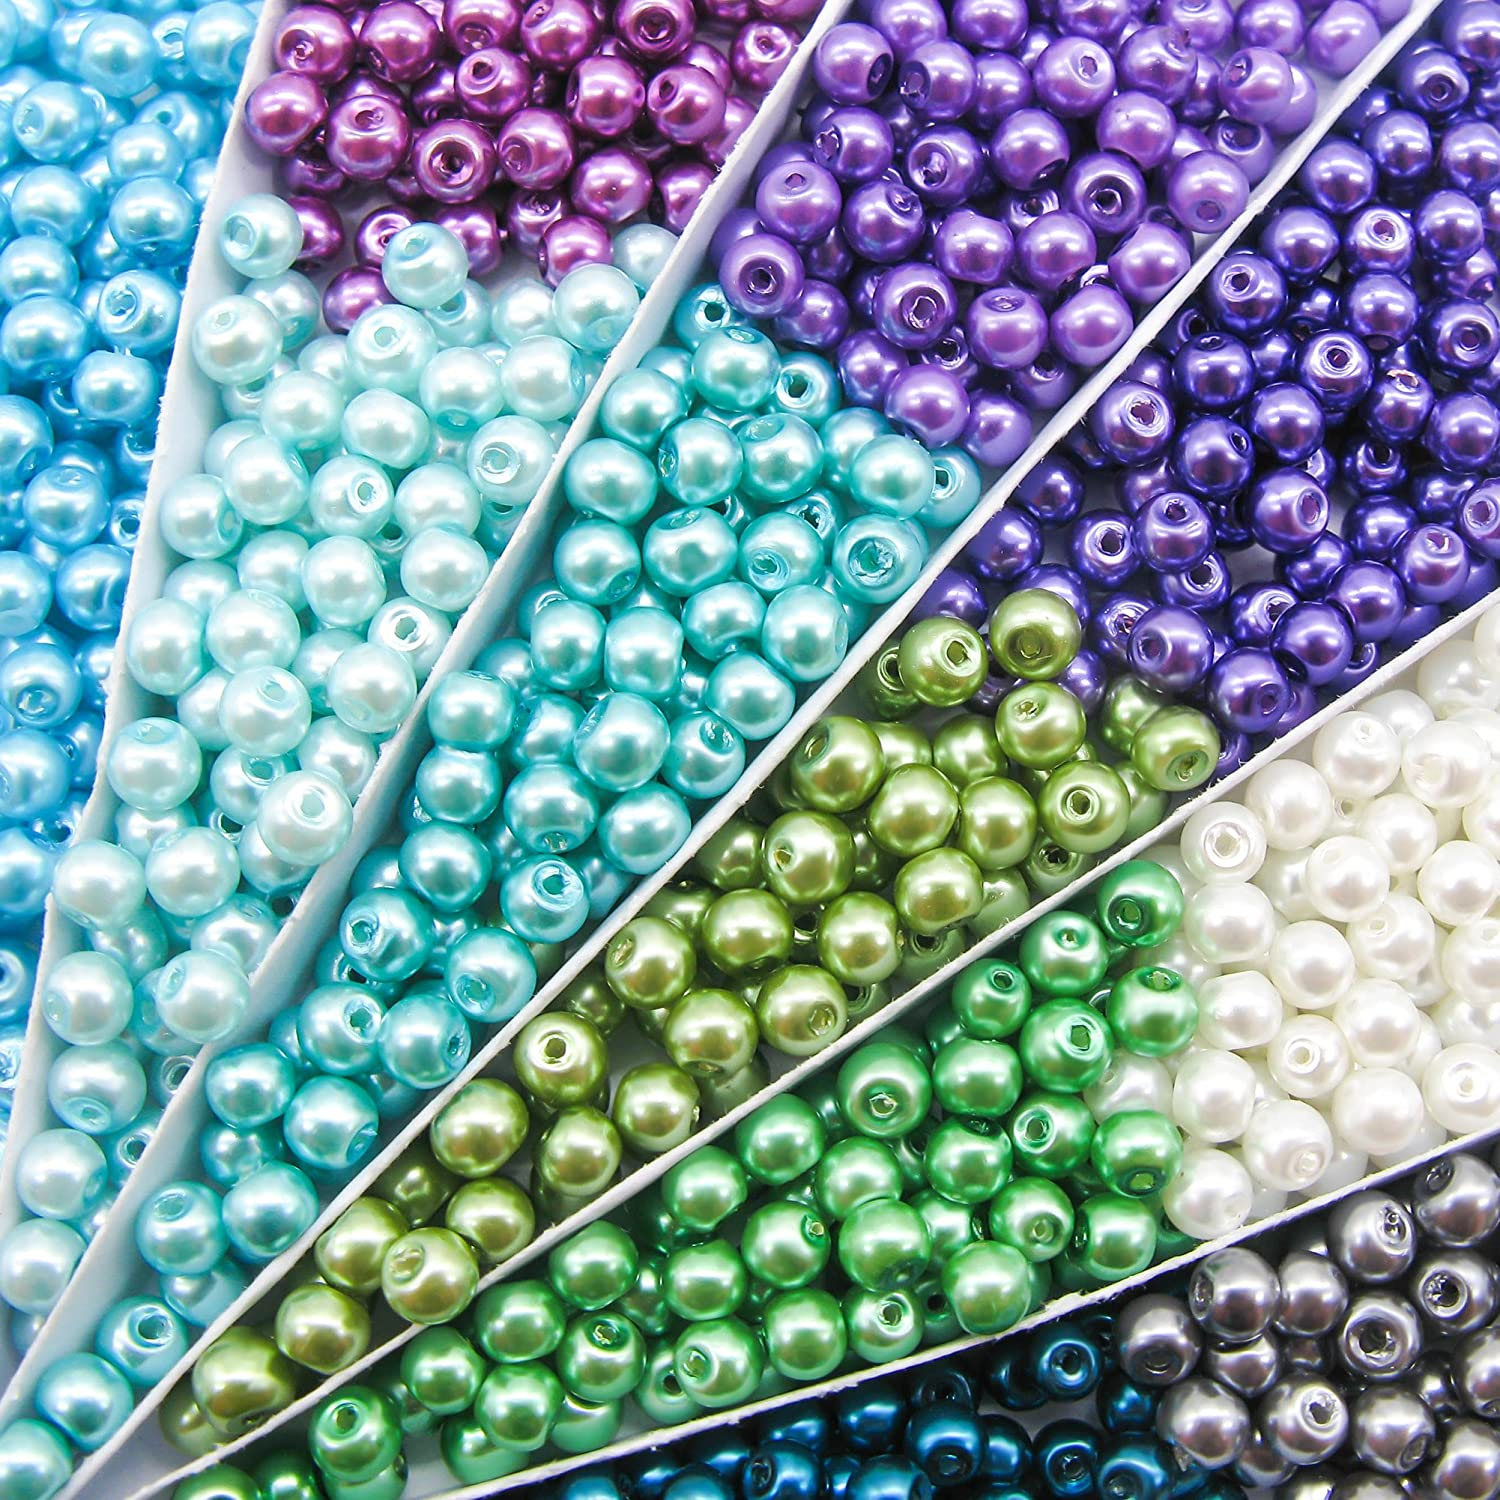 TOAOB 500pcs 6mm Tiny Satin Luster Round Glass Pearl Beads Assorted Colors Loose Beads Wholesale for Jewelry Making CLB0057